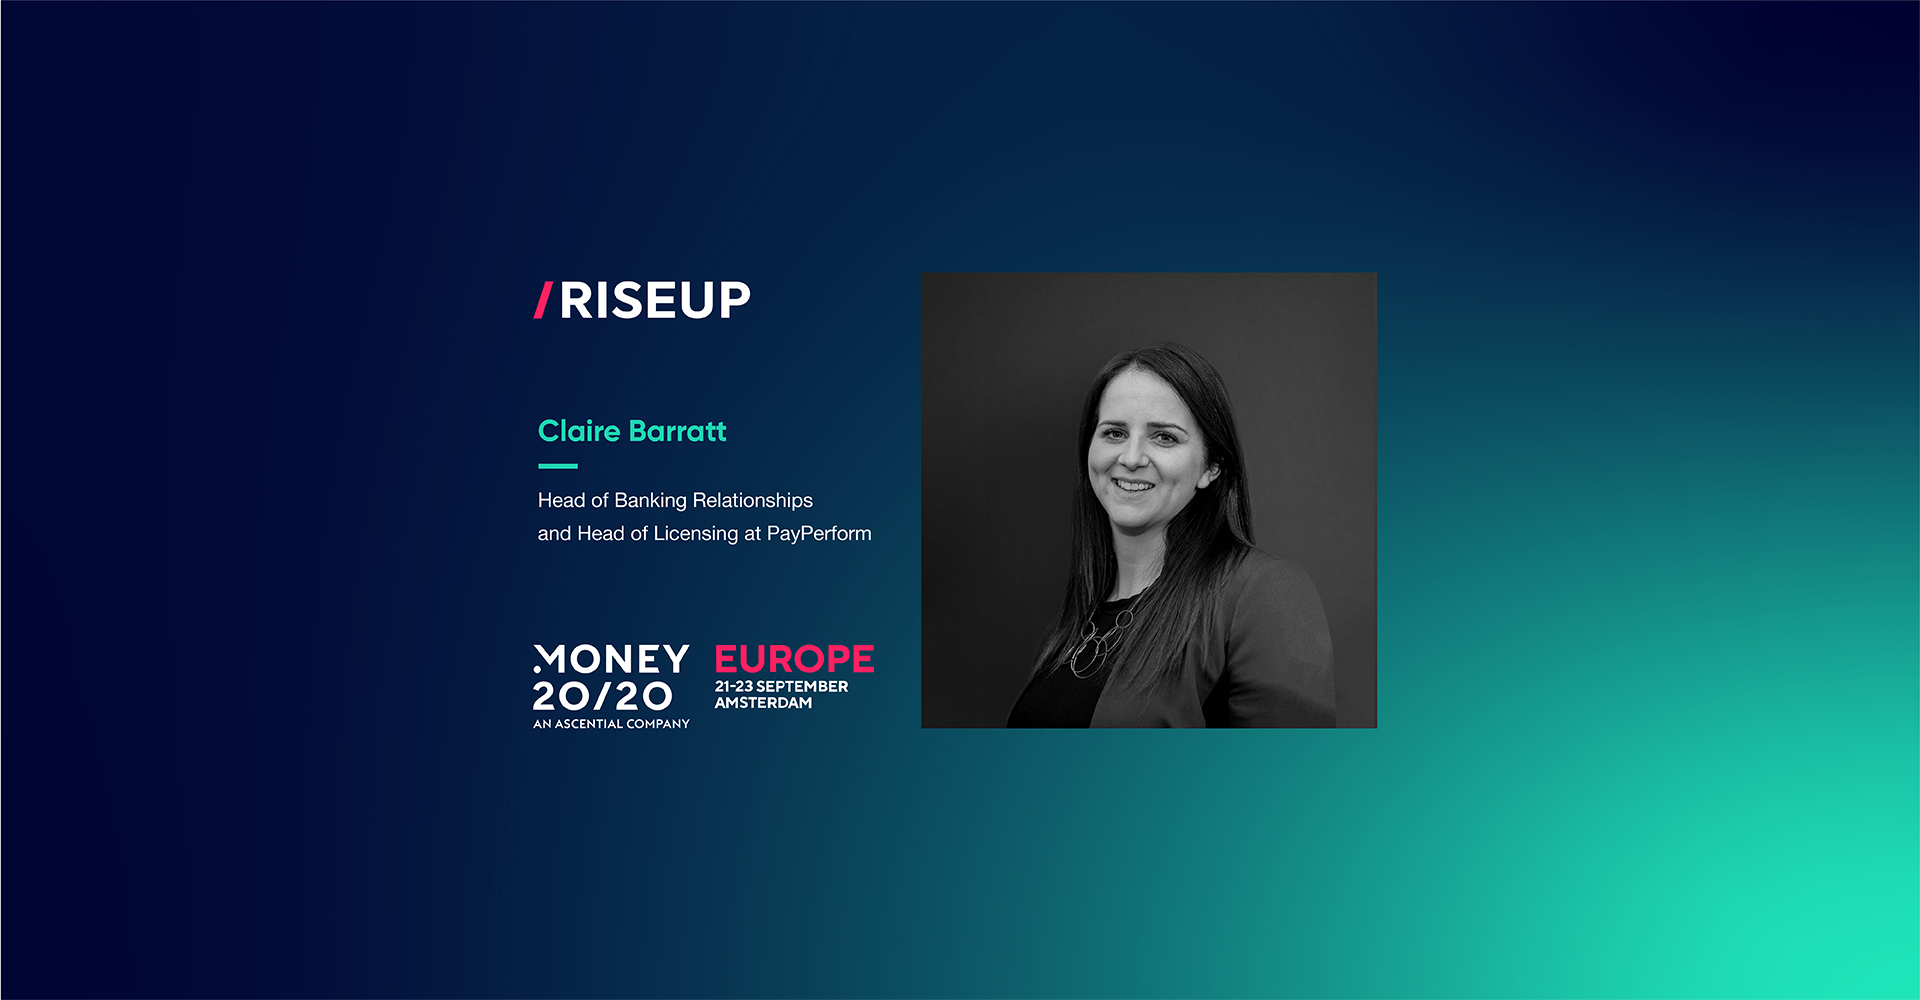 RiseUp - Empowering women in financial services